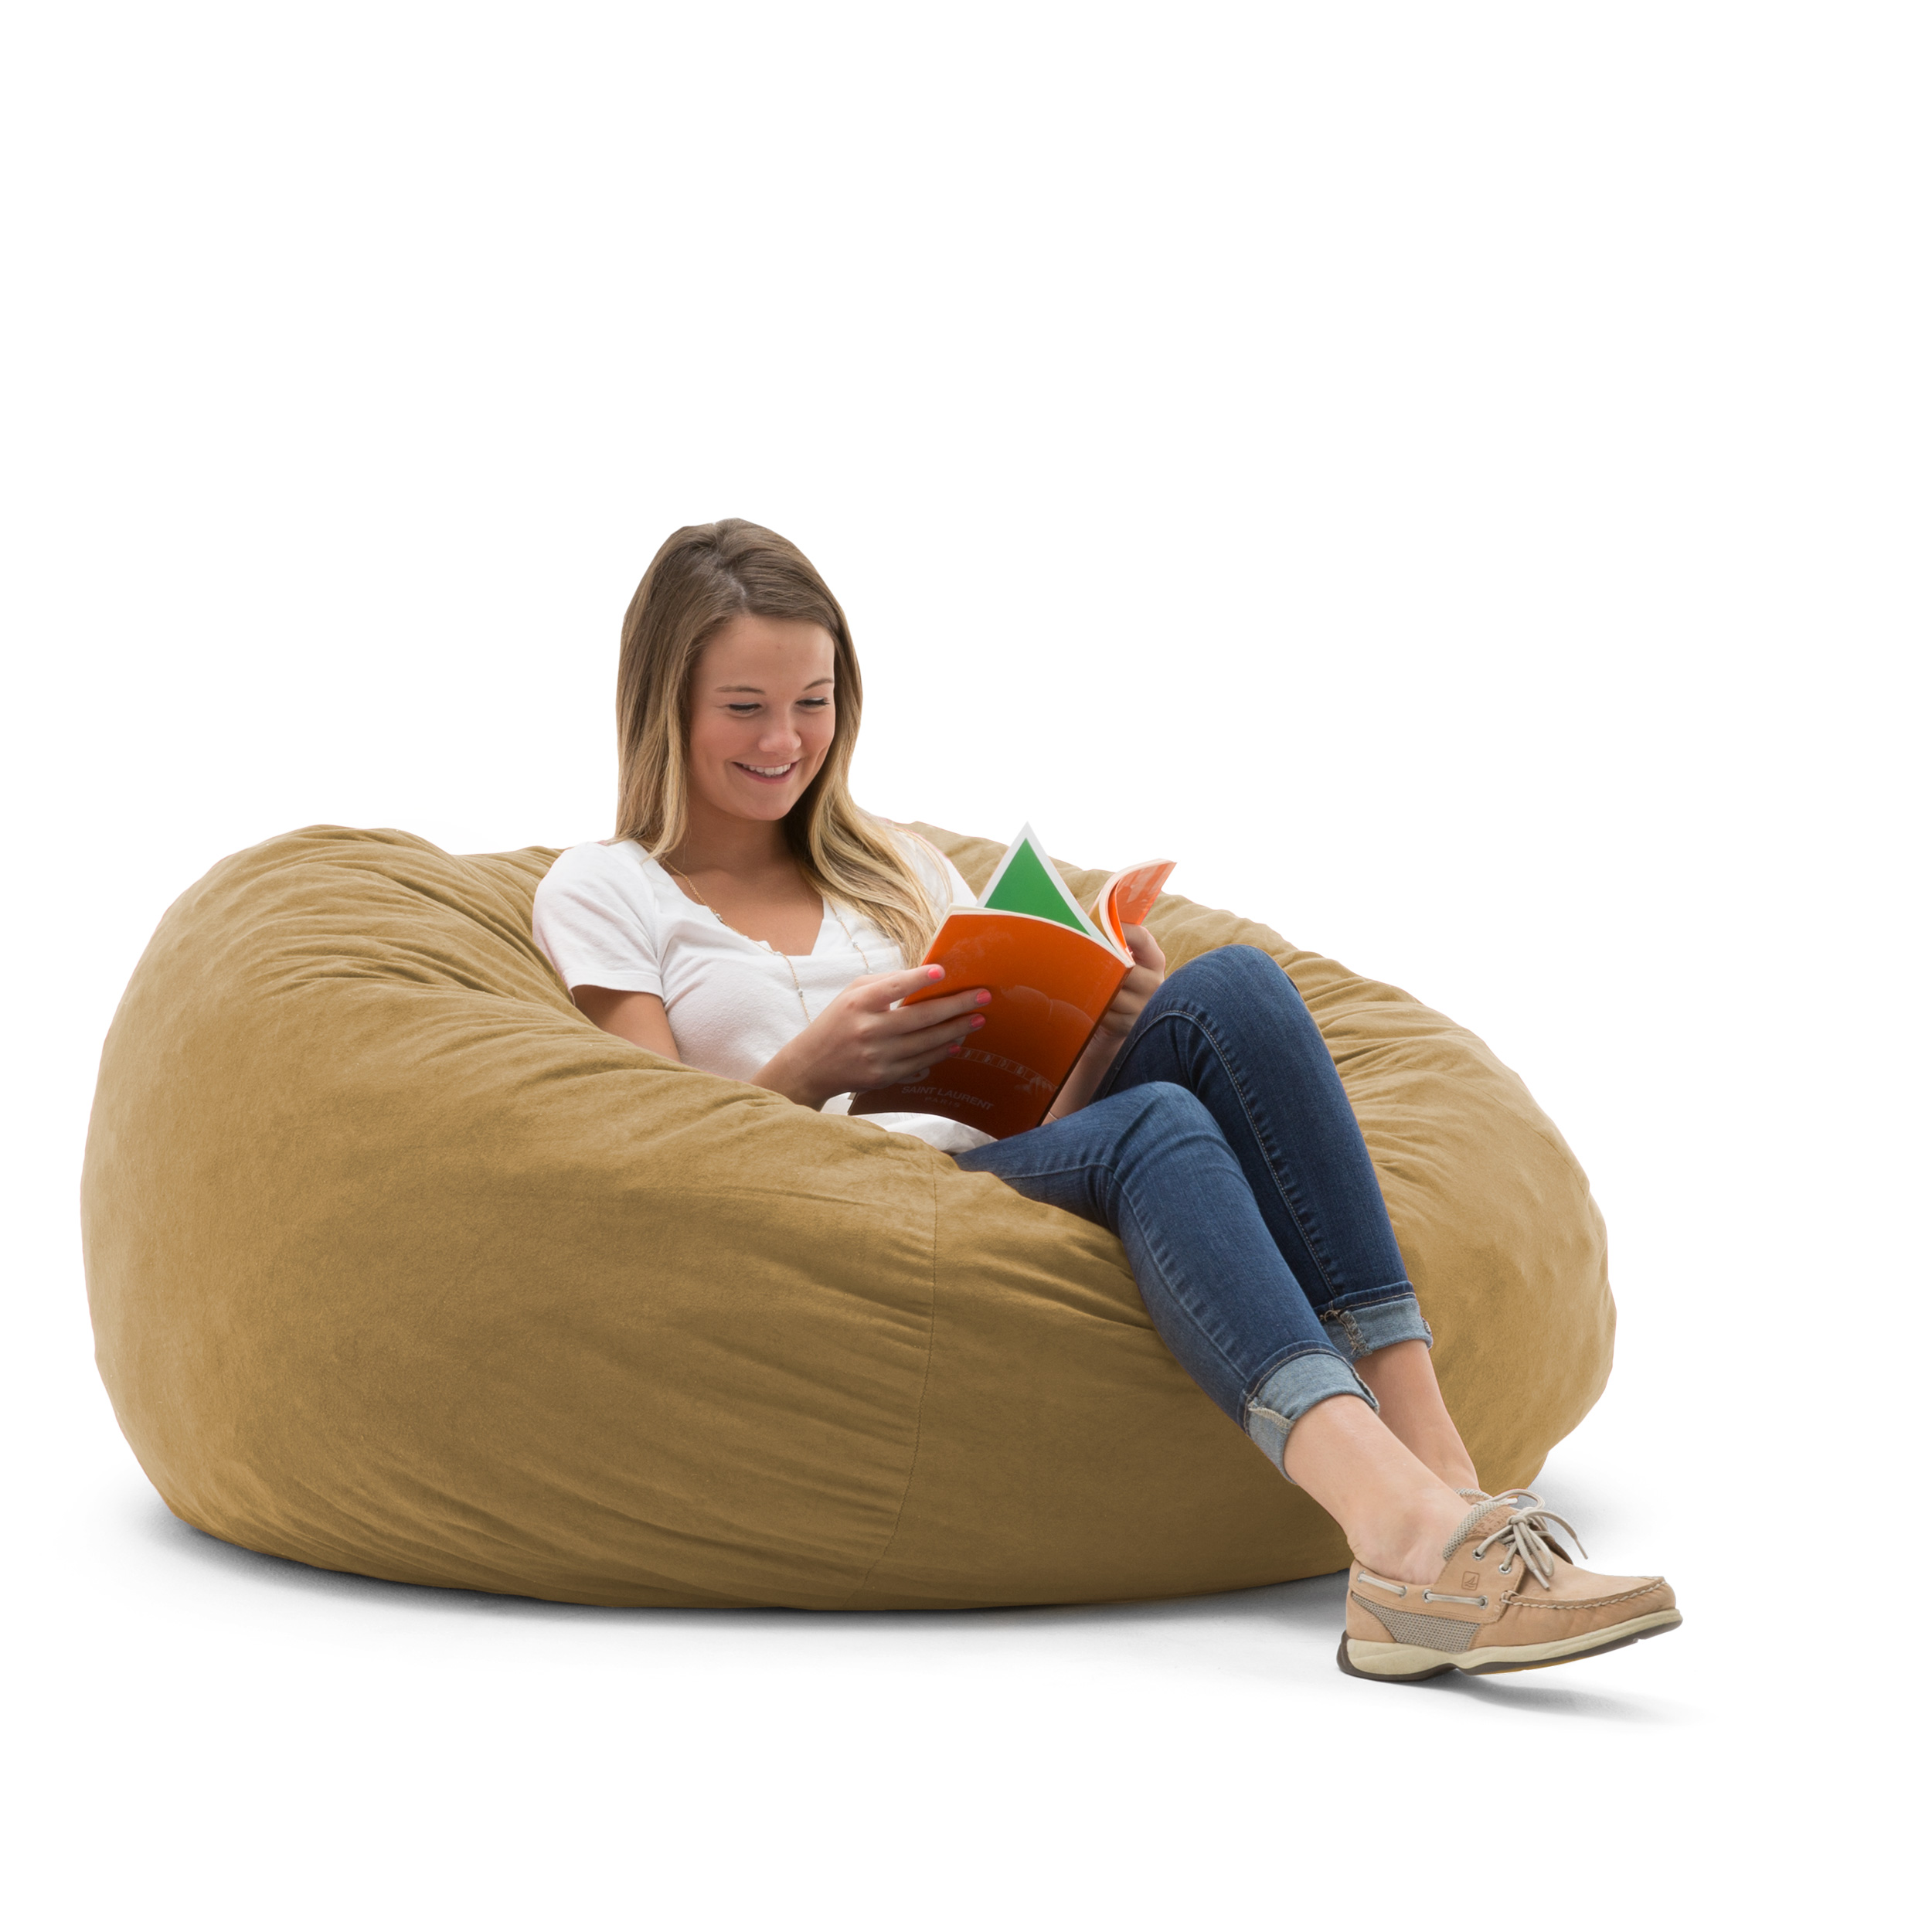 Big Joe Large 4' Fuf Bean Bag Chair, Multiple Colors/Fabrics